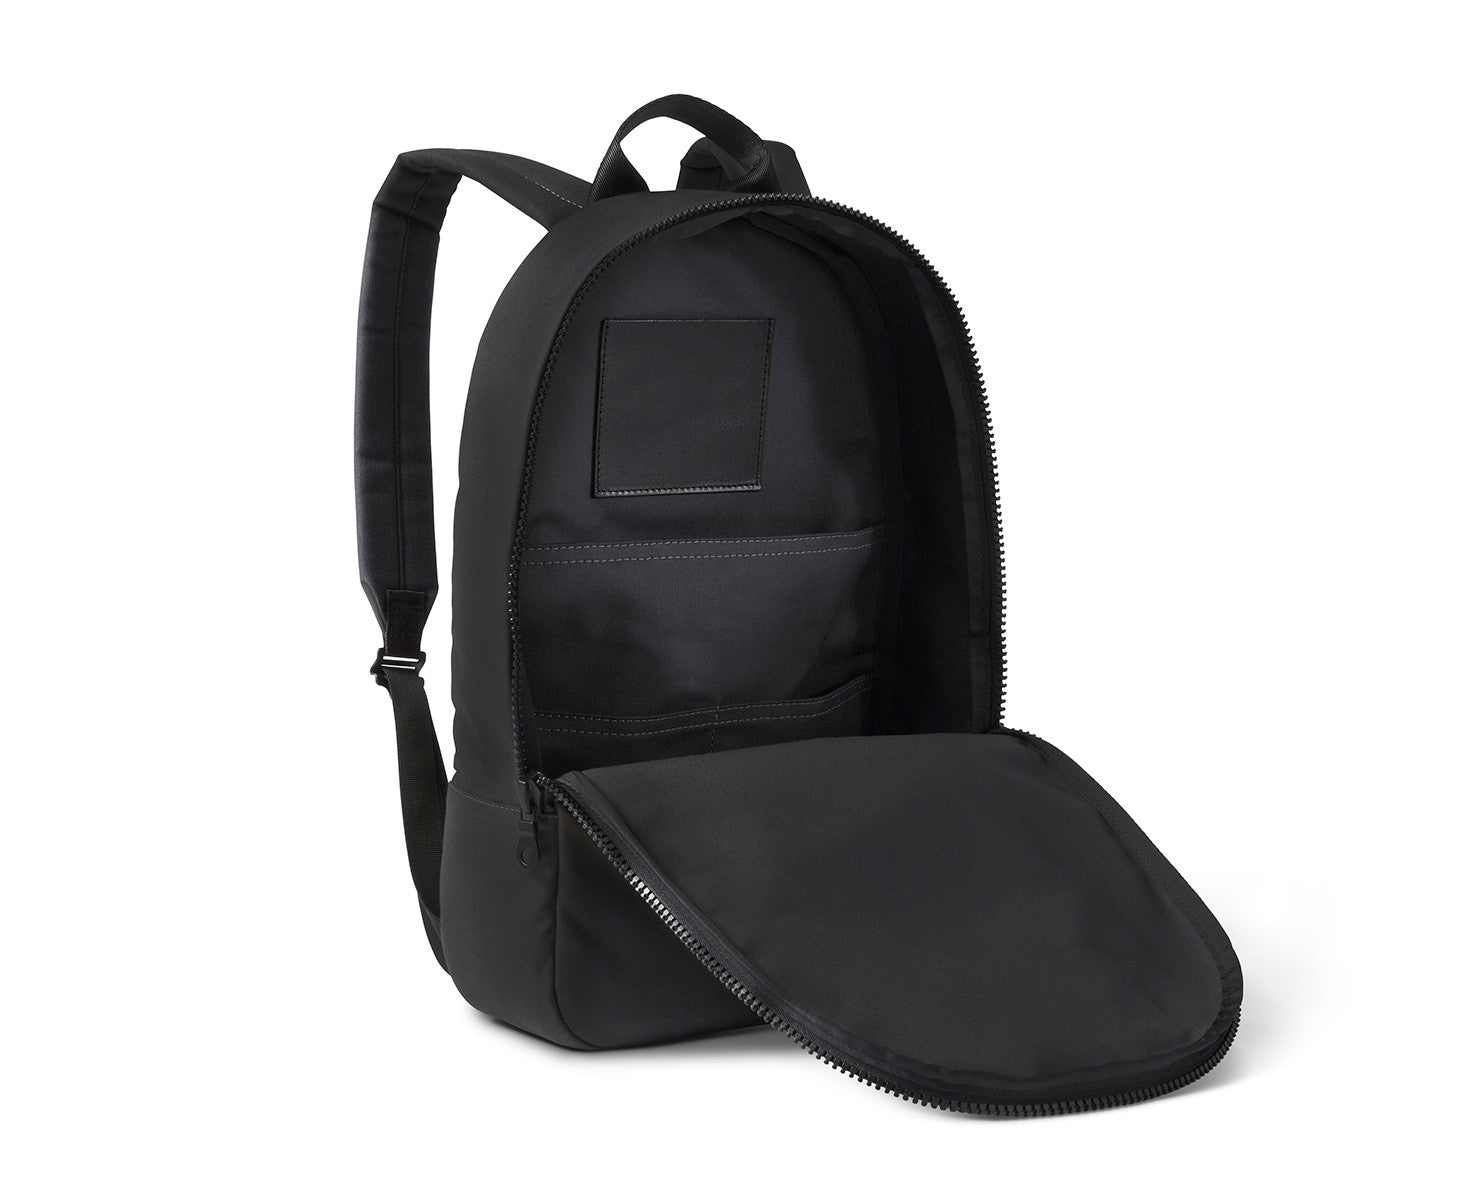 SPECIAL OPS BACKPACK 3.0 | KILLSPENCER® - Black Canvas